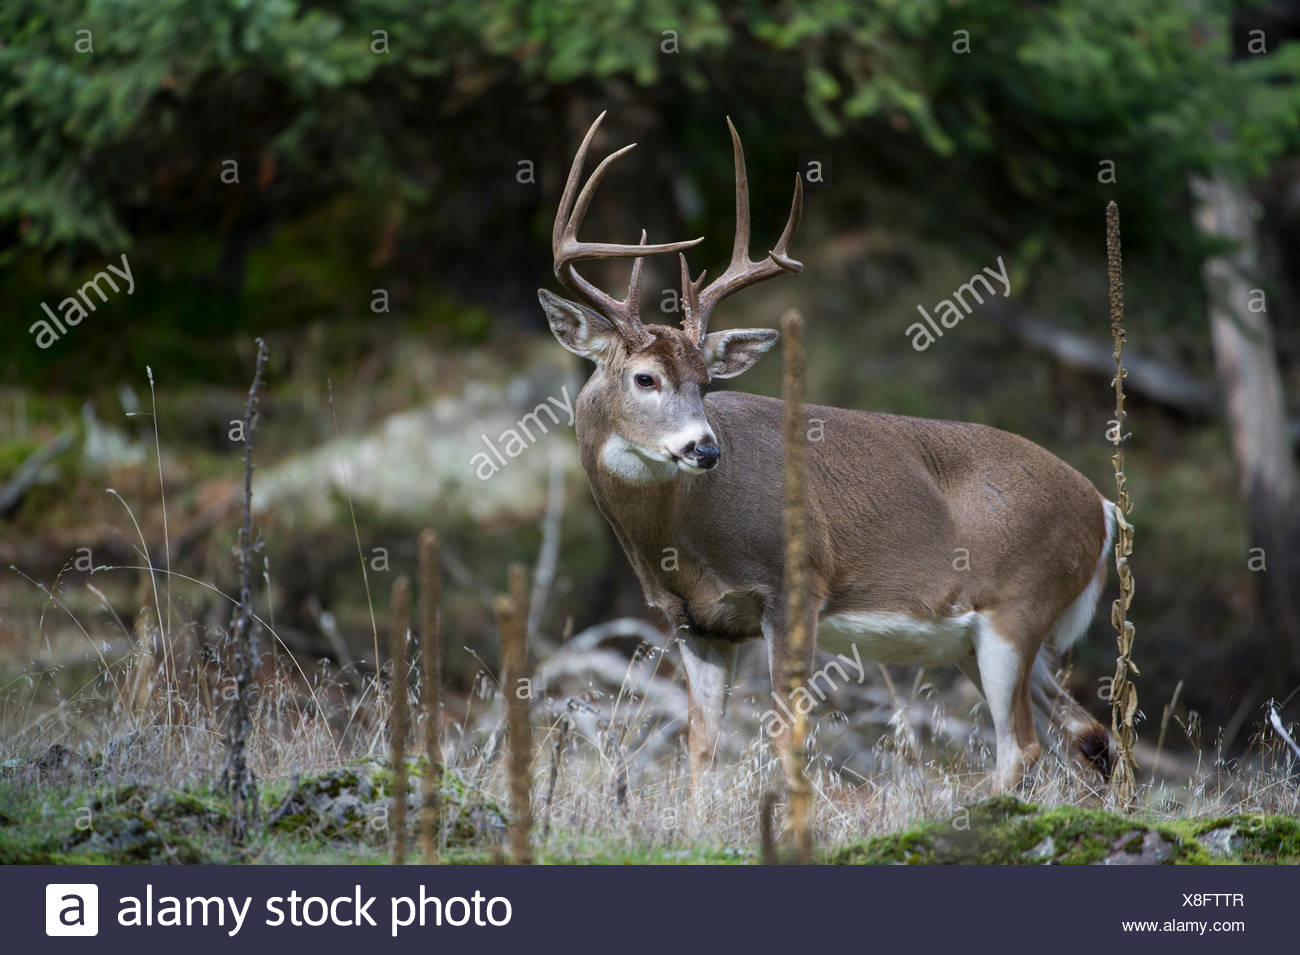 Male Whitetail Deer, Odocoileus virginianus, Central Idaho, USA Stock Photo